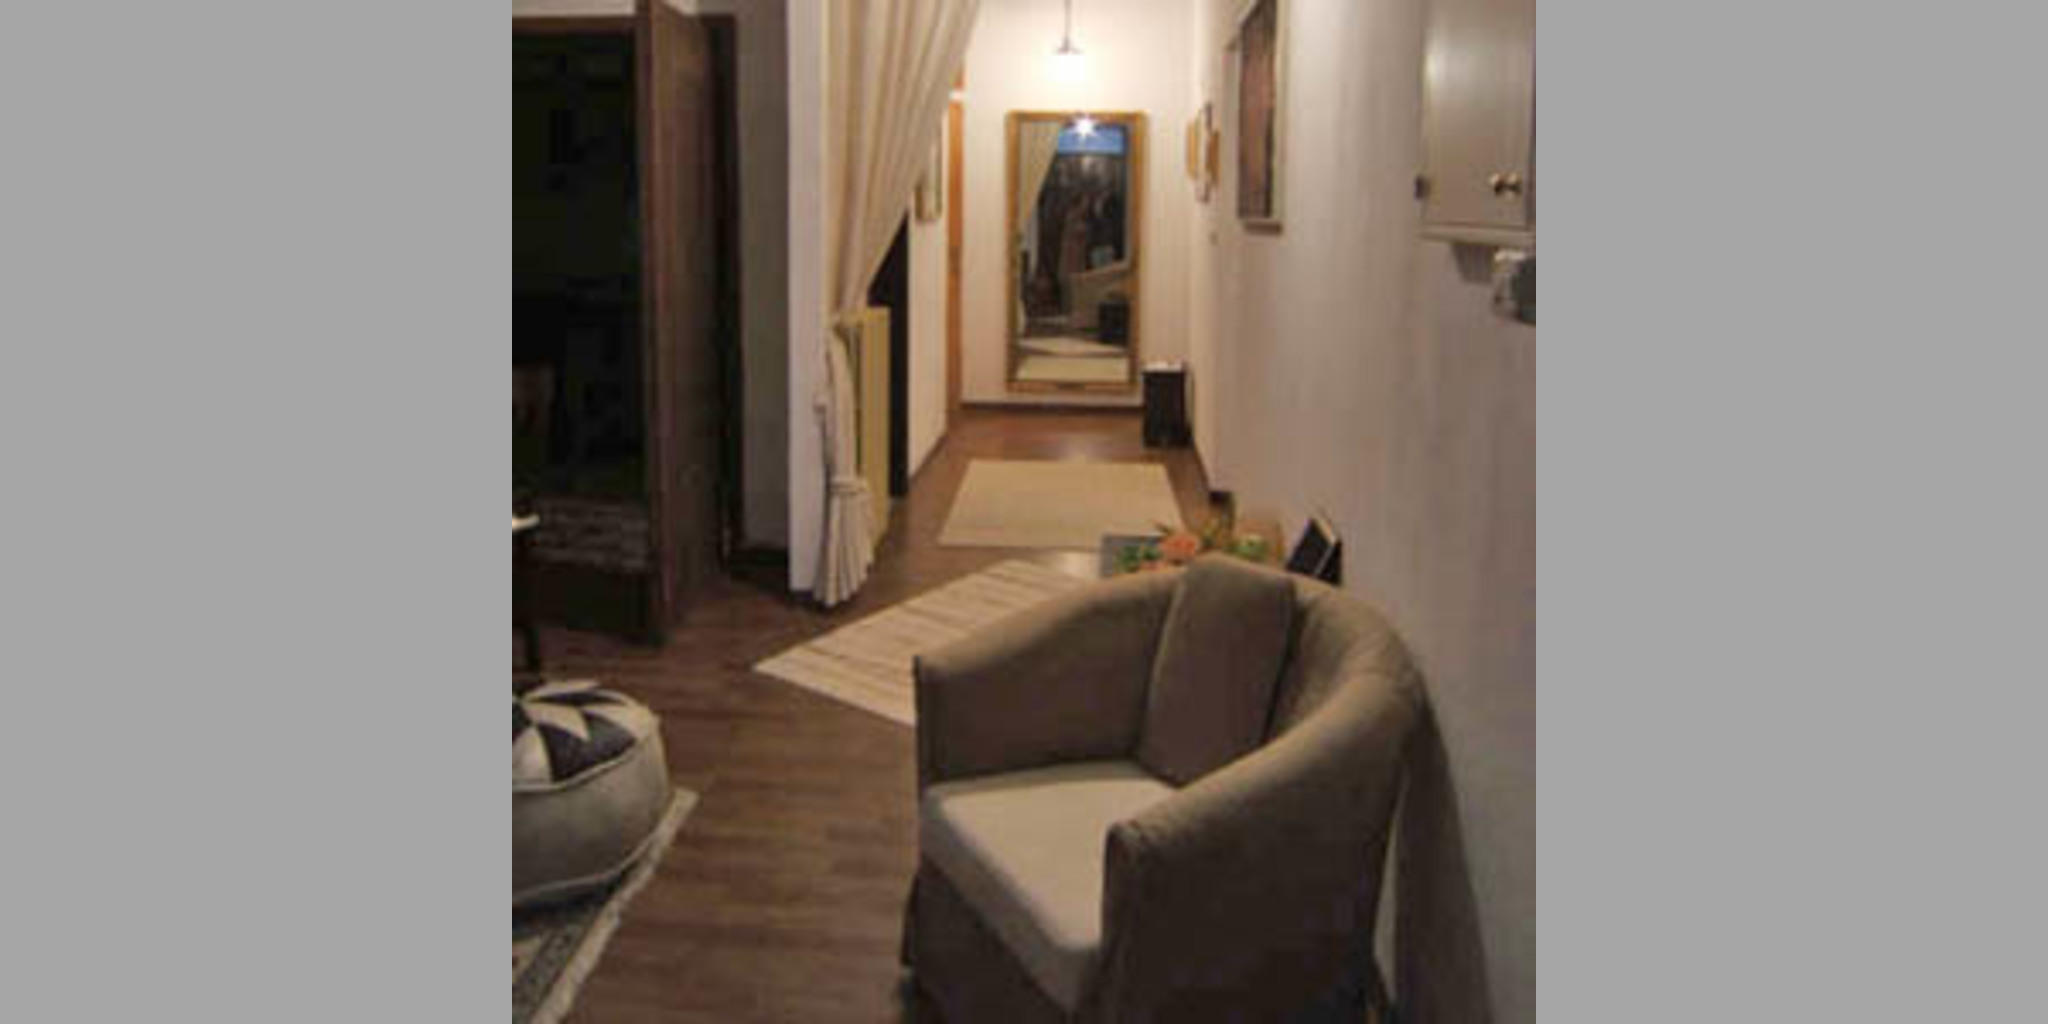 Bed & Breakfast Fagnano Castello - Magna Grecia